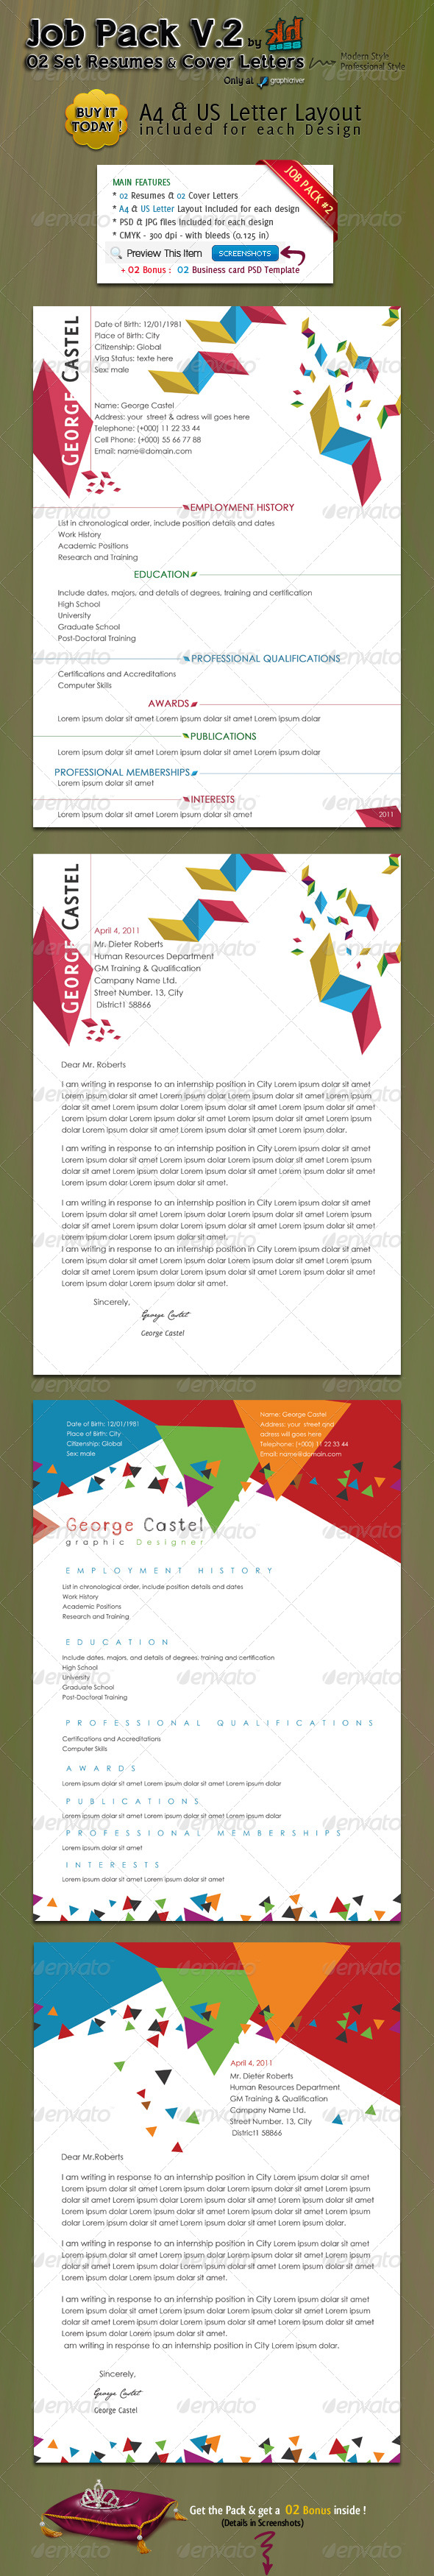 GraphicRiver JOB PACK V.2 2 Resumes with their Cover Letters 180740